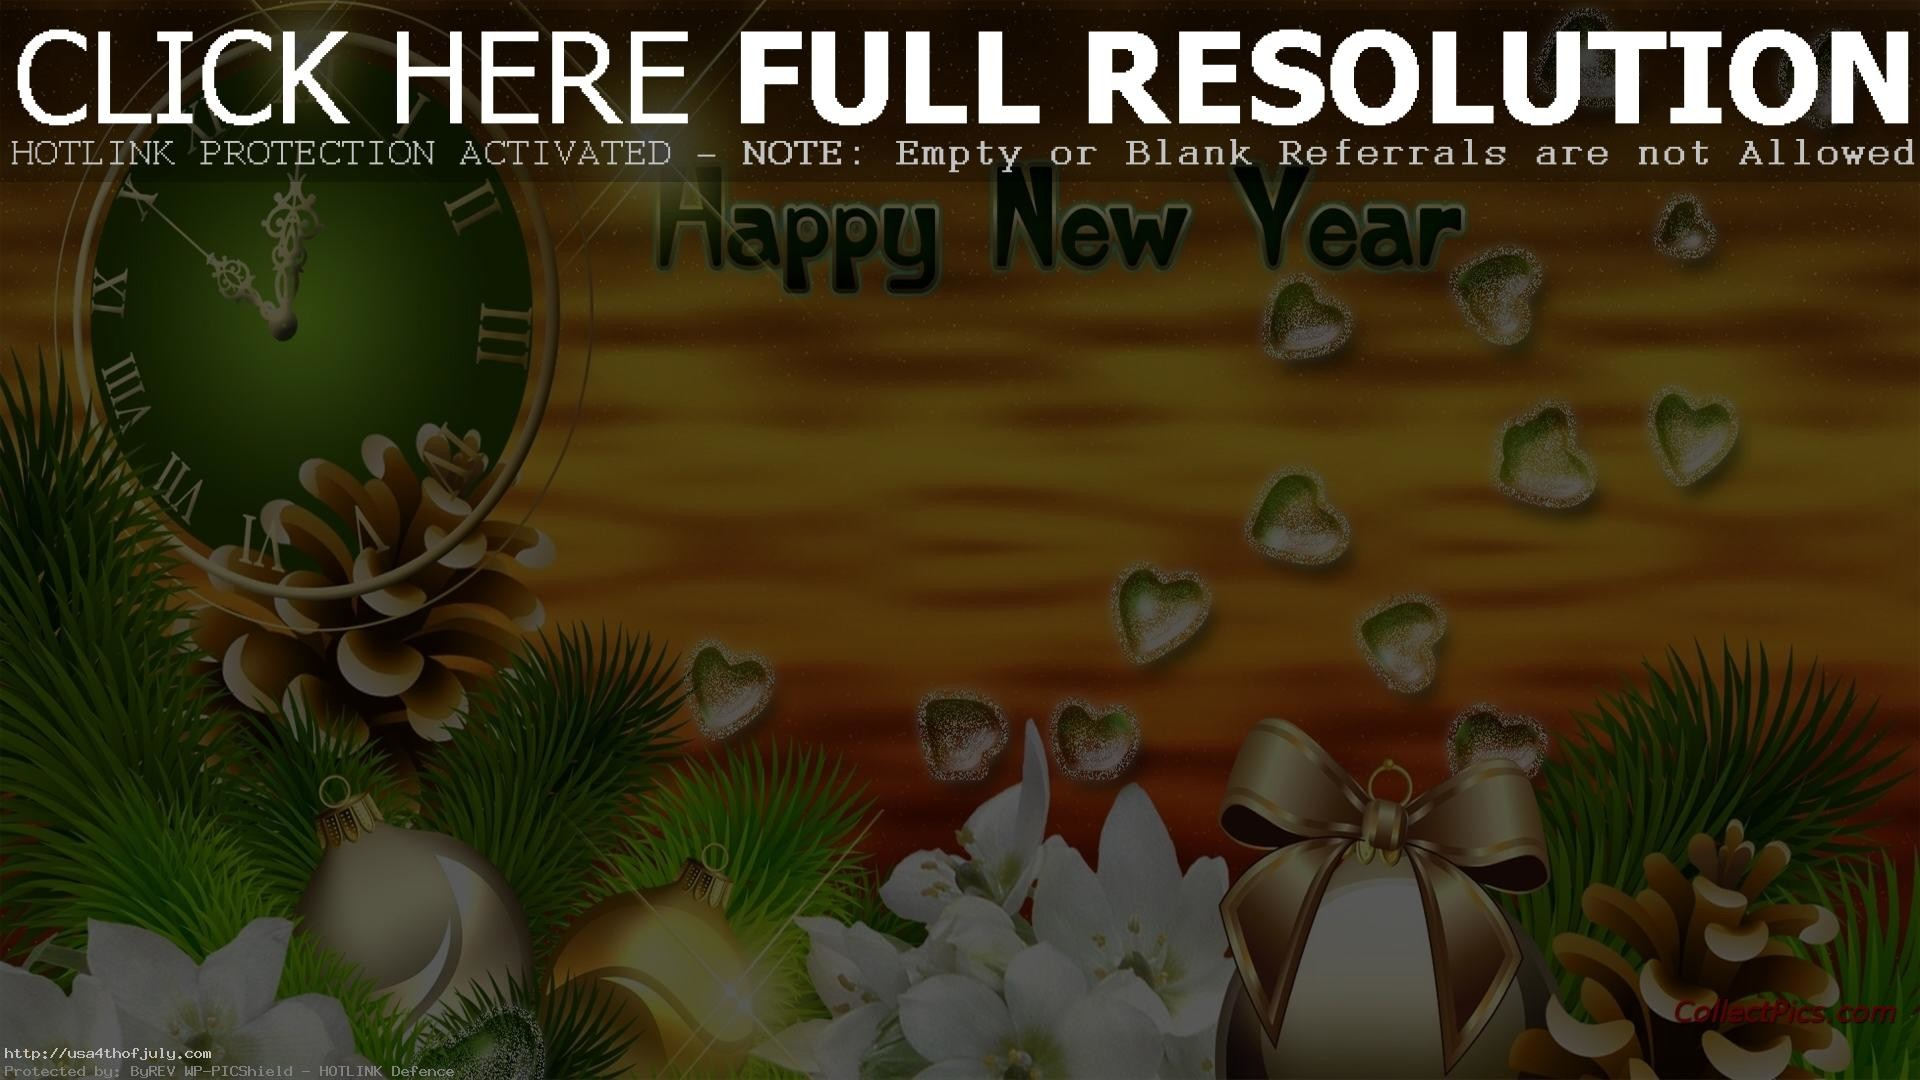 1920x1080 new year wallpaper 2017 free download download happy